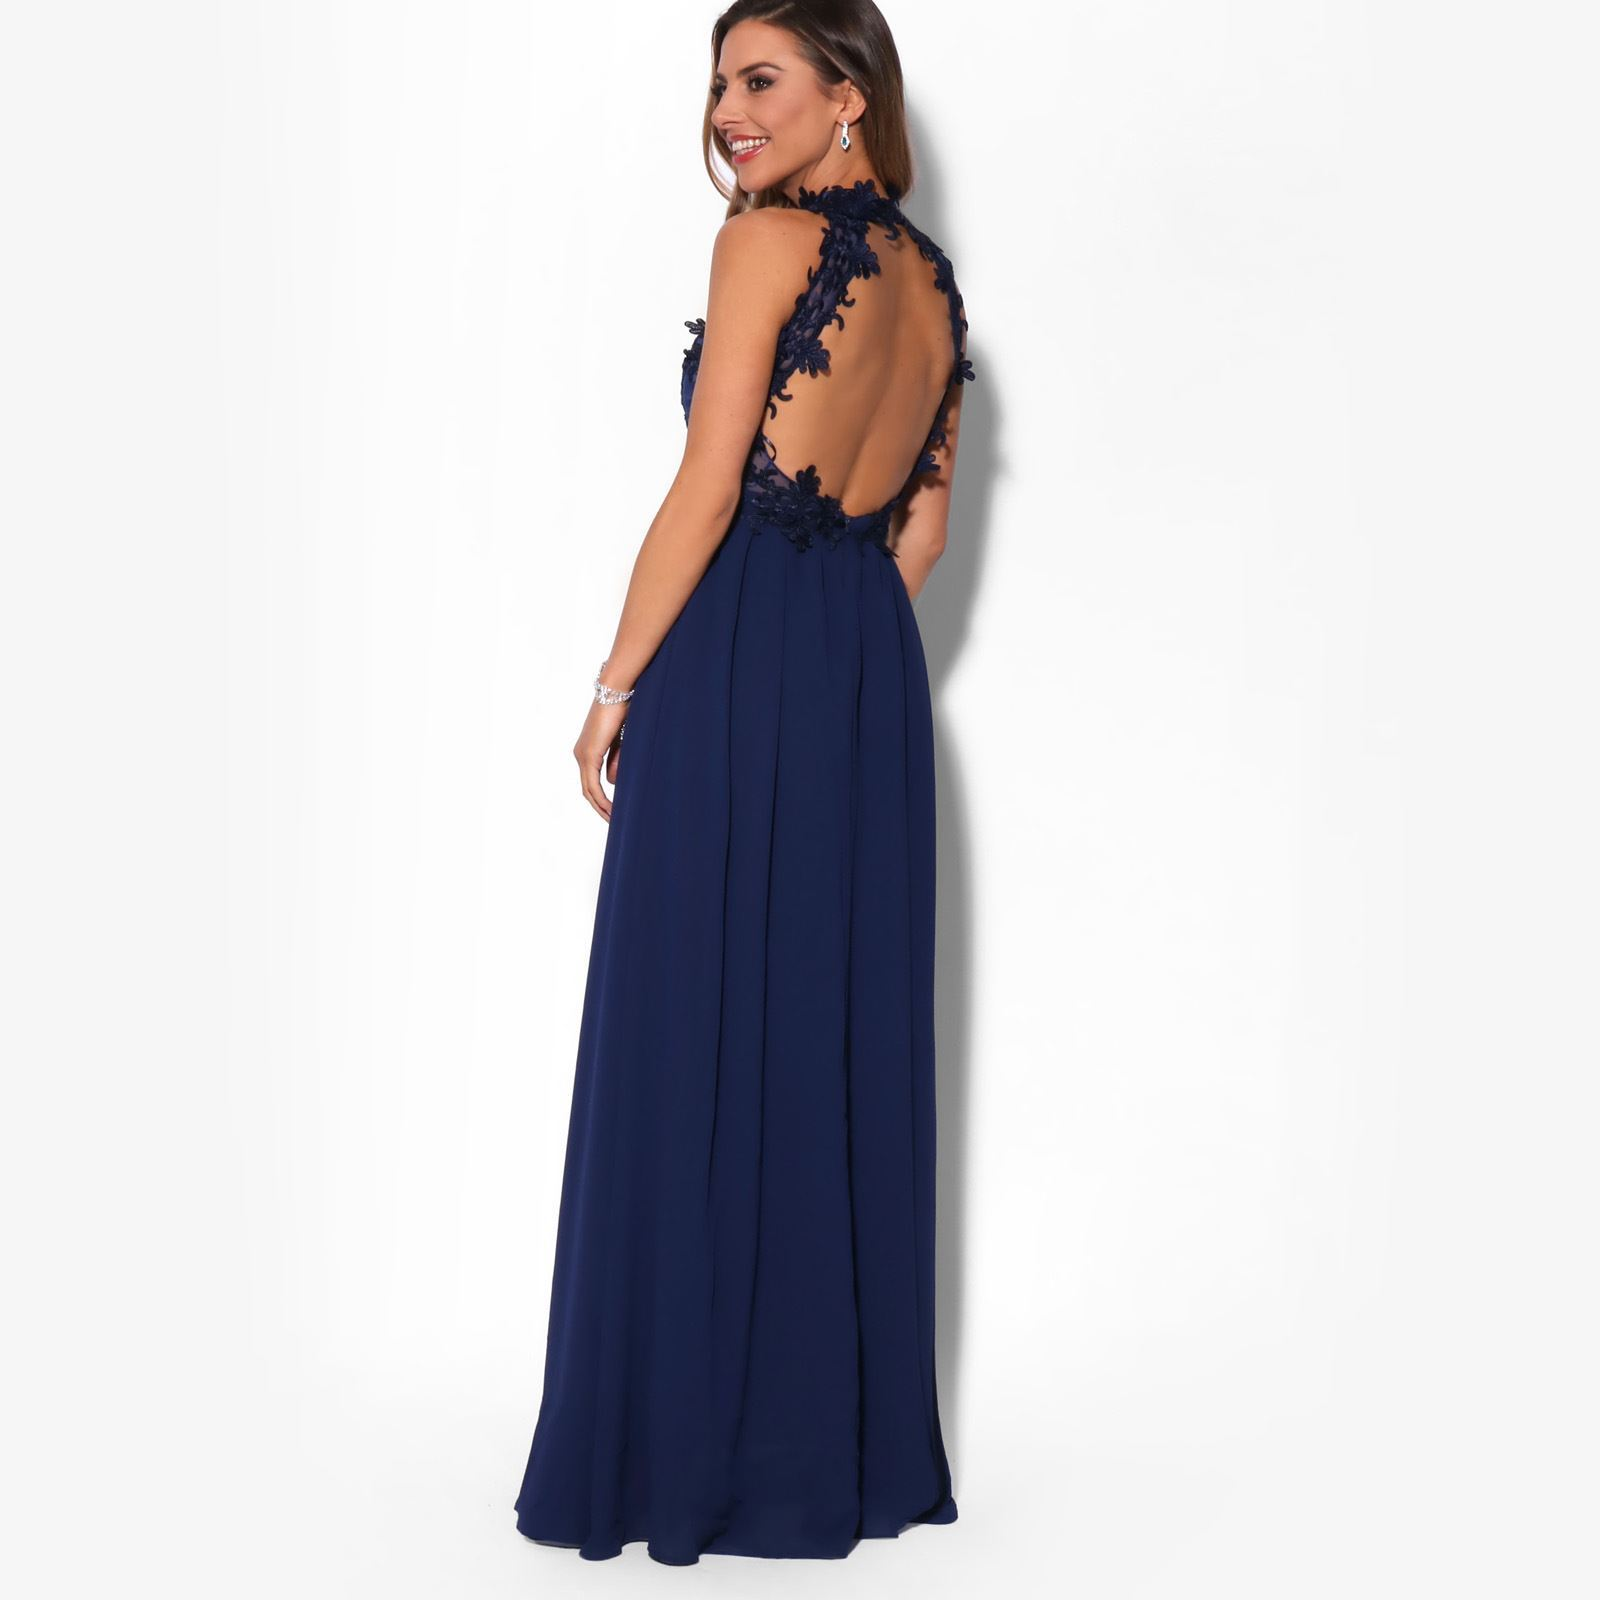 Women-Lace-Halterneck-Maxi-Dress-Long-Evening-Cocktail-Ball-Gown-Formal-Party thumbnail 6